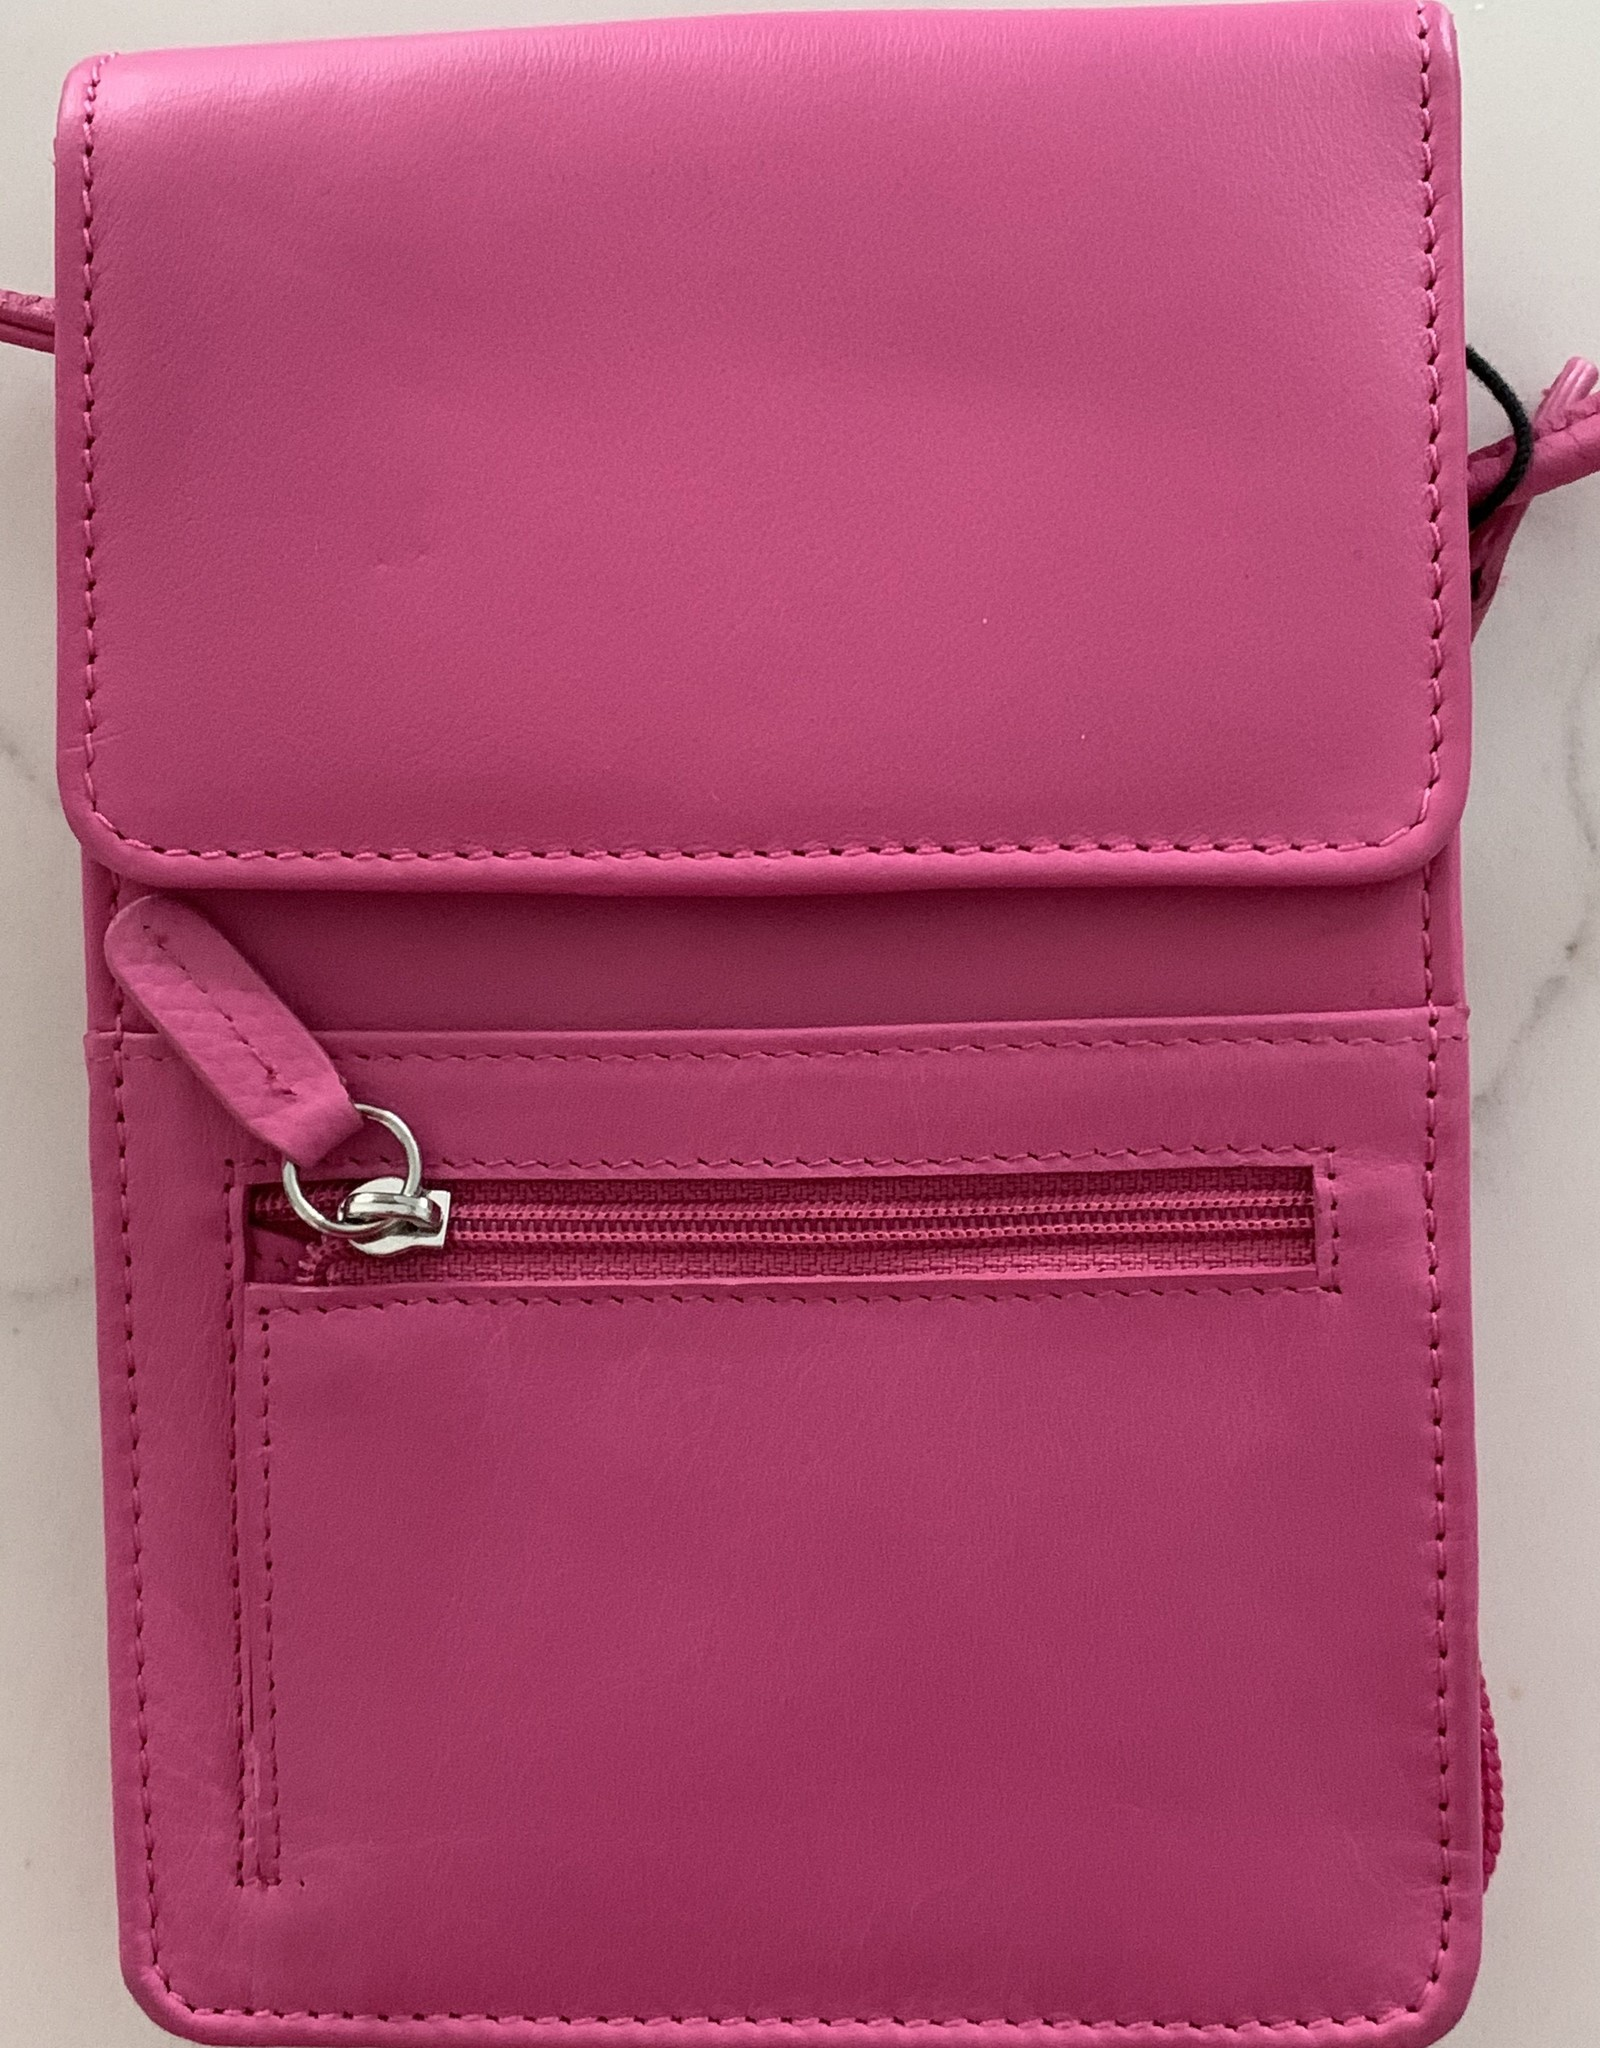 INTERCONTINENTAL LEATHER IND Leather Front Flap Crossbody Purse